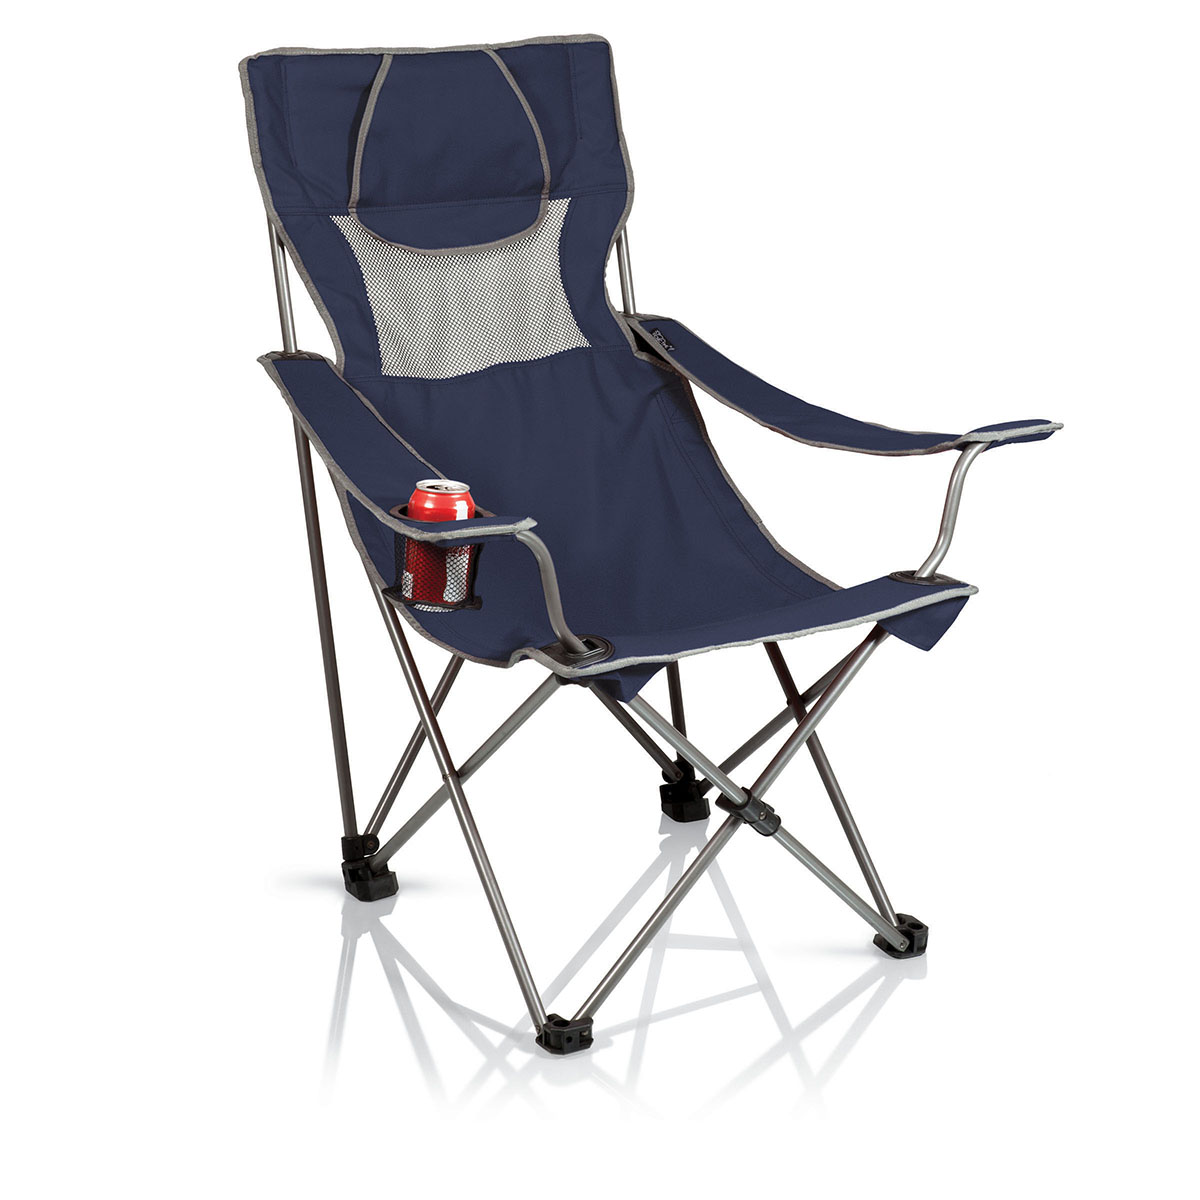 picnic time chairs wheelchair joystick the campsite chair by standard height quad